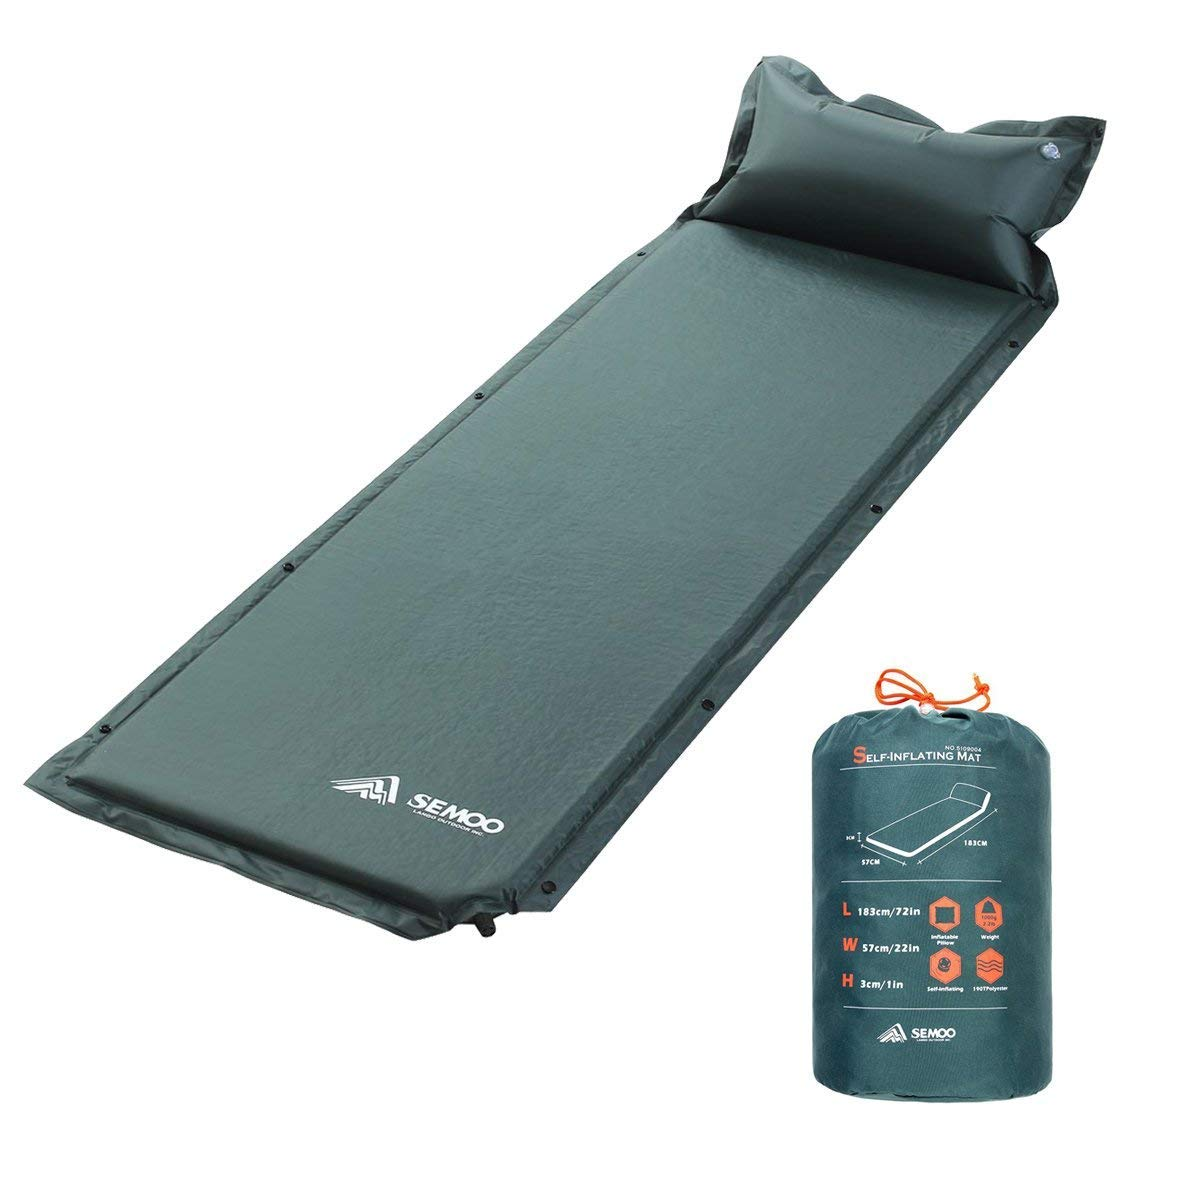 SEMOO Self-Inflating Camping Sleeping Mat/pad, 190T Polyester, Water Repellent Coating, with Attached Inflatable Pillow by SEMOO